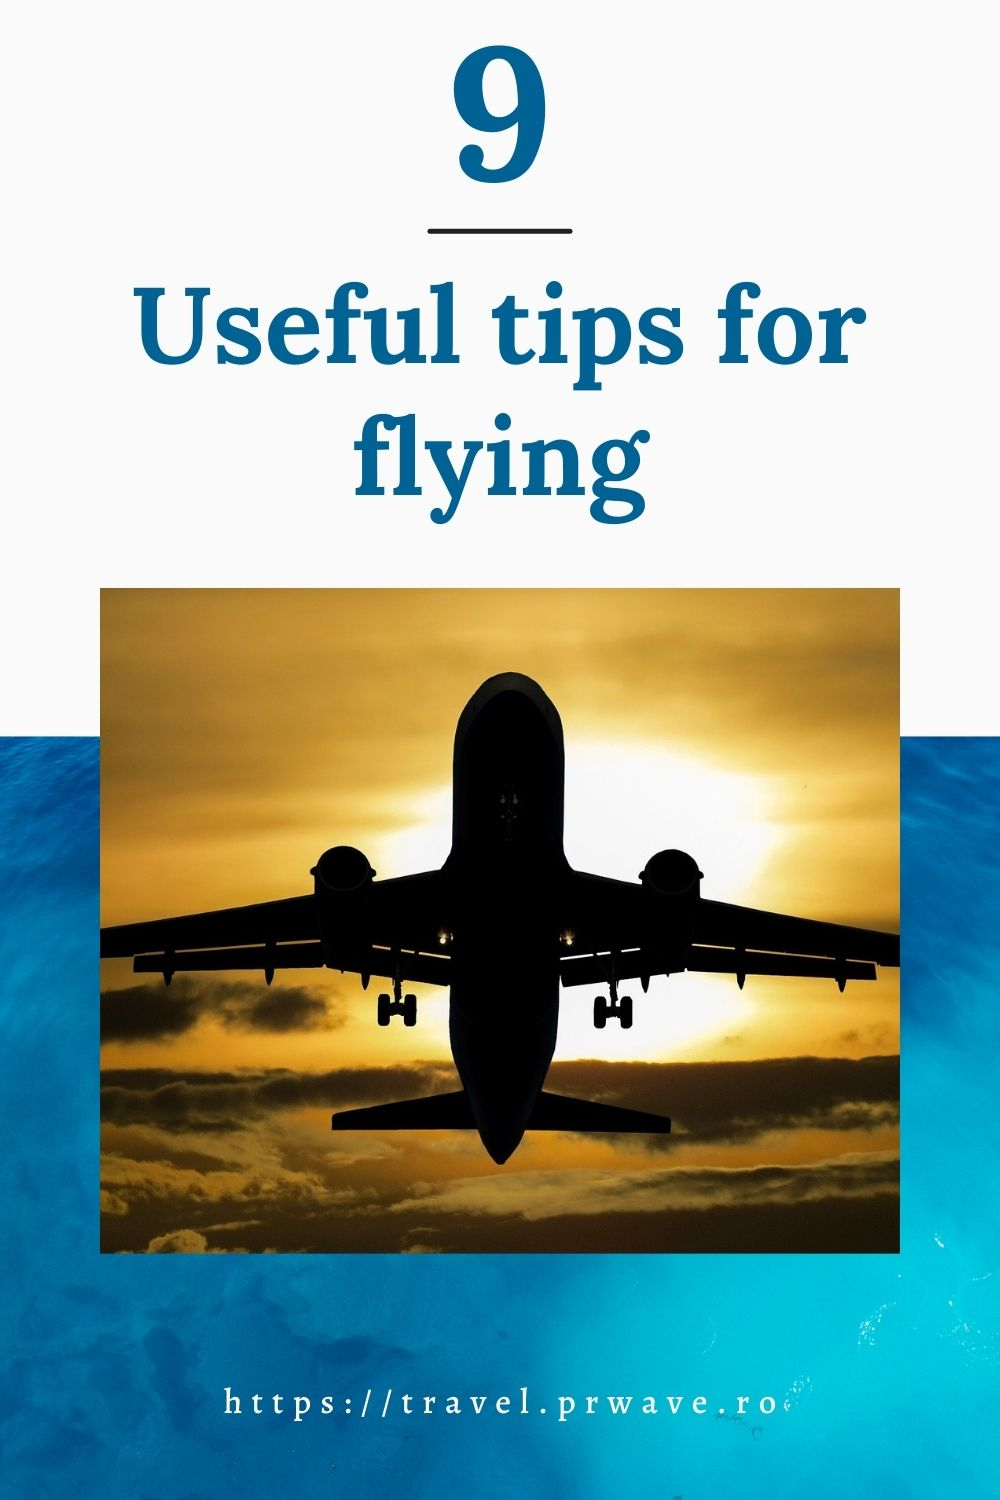 How to have the perfect flying experience: 9 useful tips for flying. Read this article with useful flying tips that will help you have a great trip each time. #flying #airplane #flyingtips #flyingexperience #travelmomentsintime